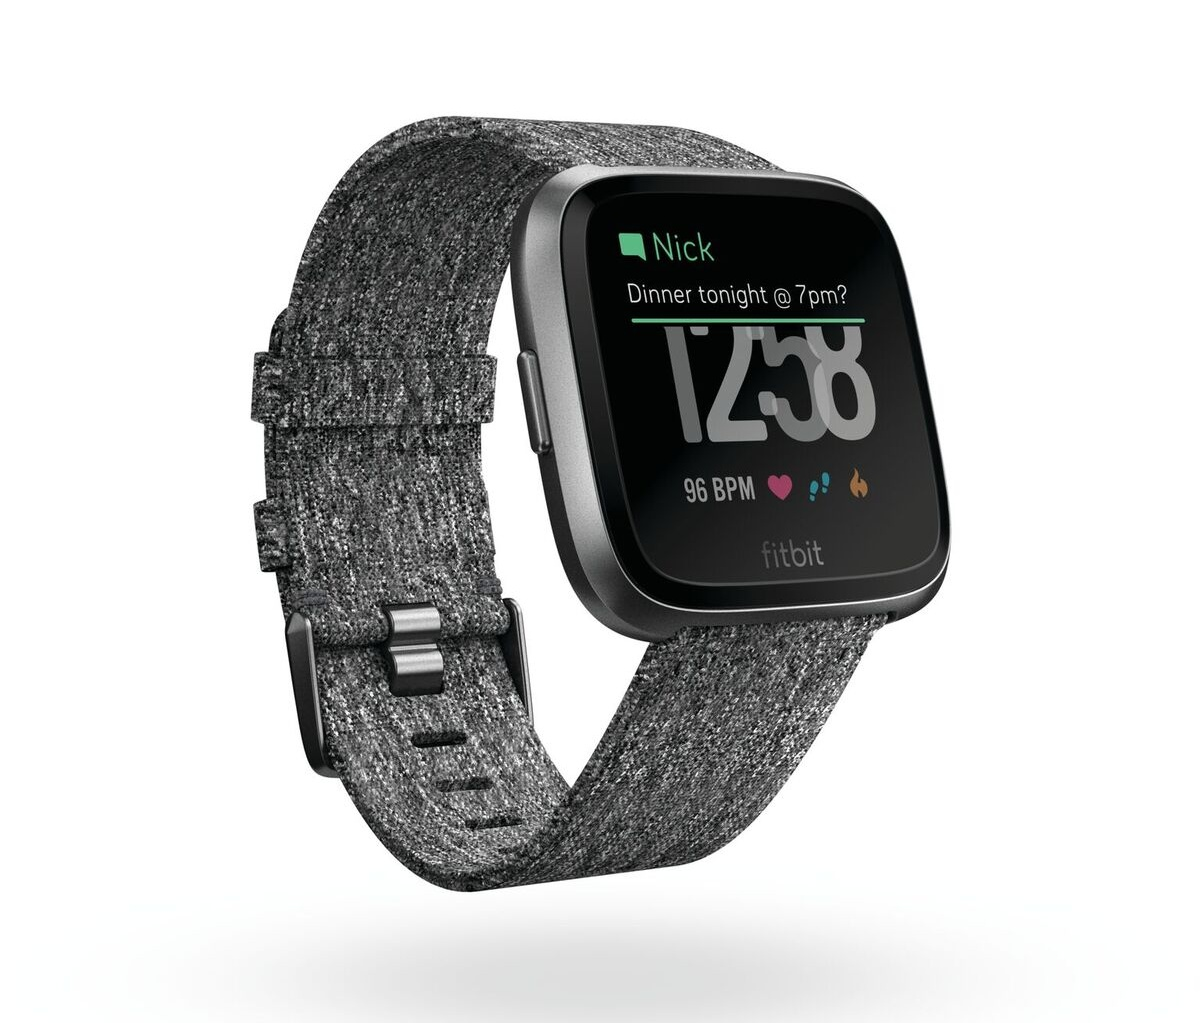 b58af77de3d fitbit versa 3qtr se charcoal notifications preview  fitbit versa front se charcoal pay preview